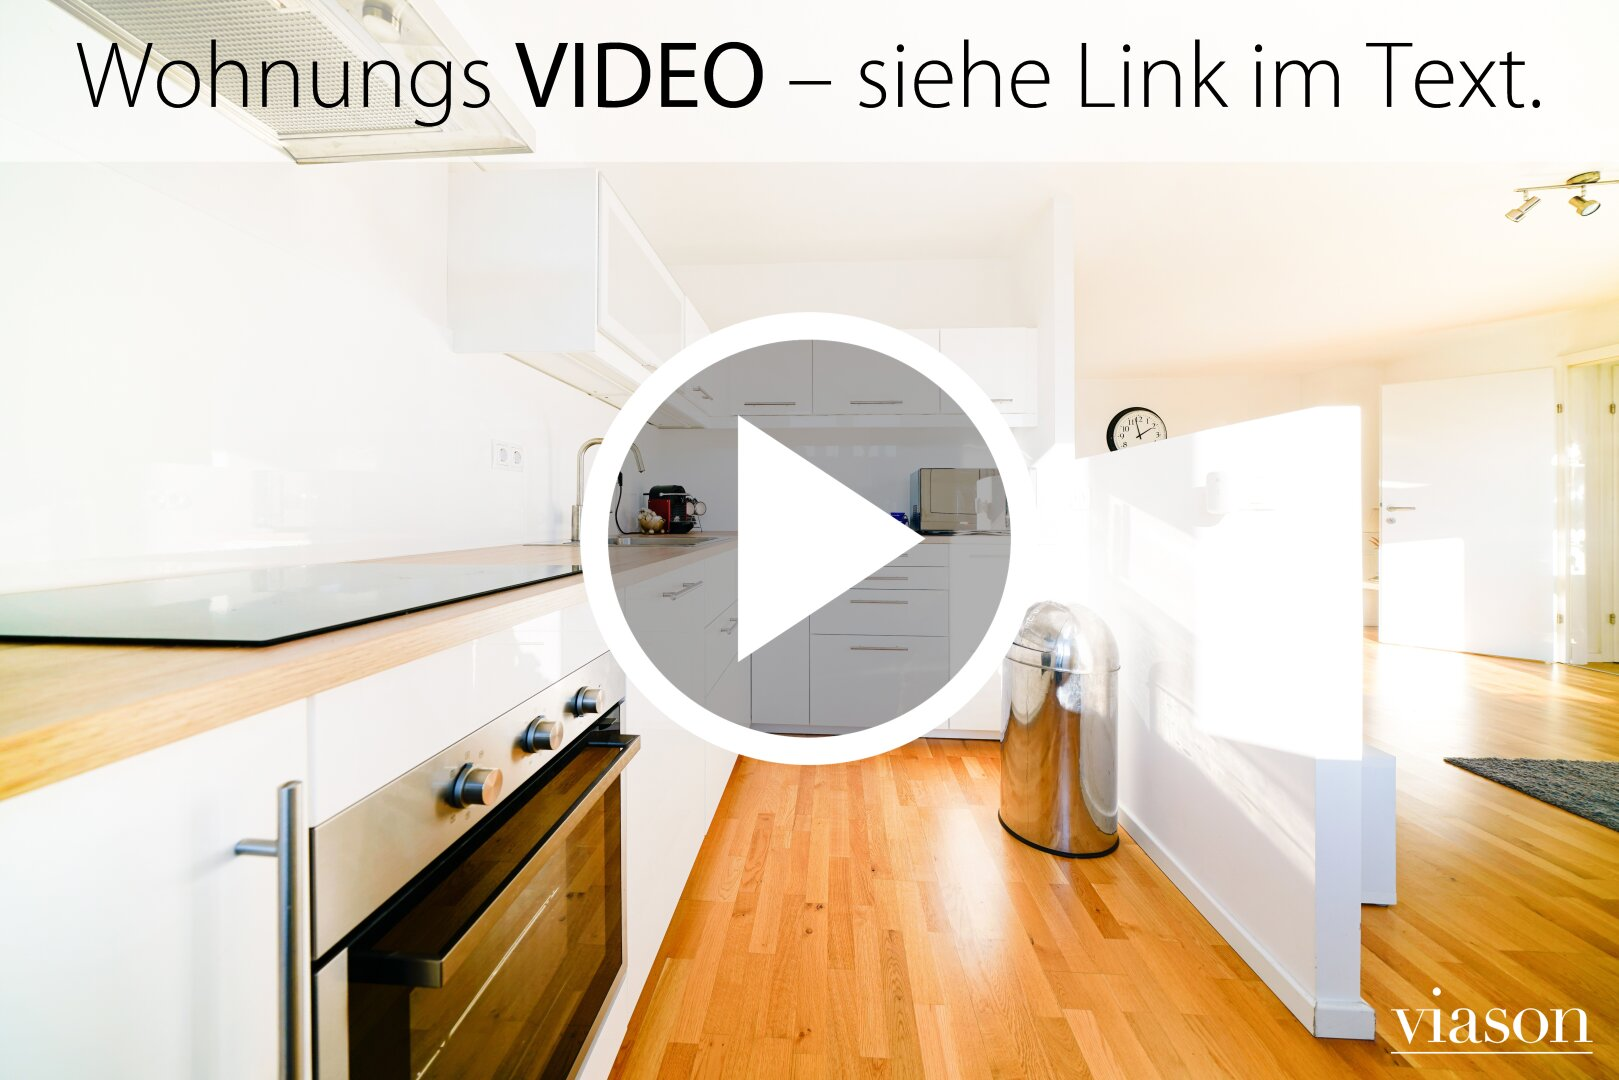 Wohnungs VIDEO Link im Text